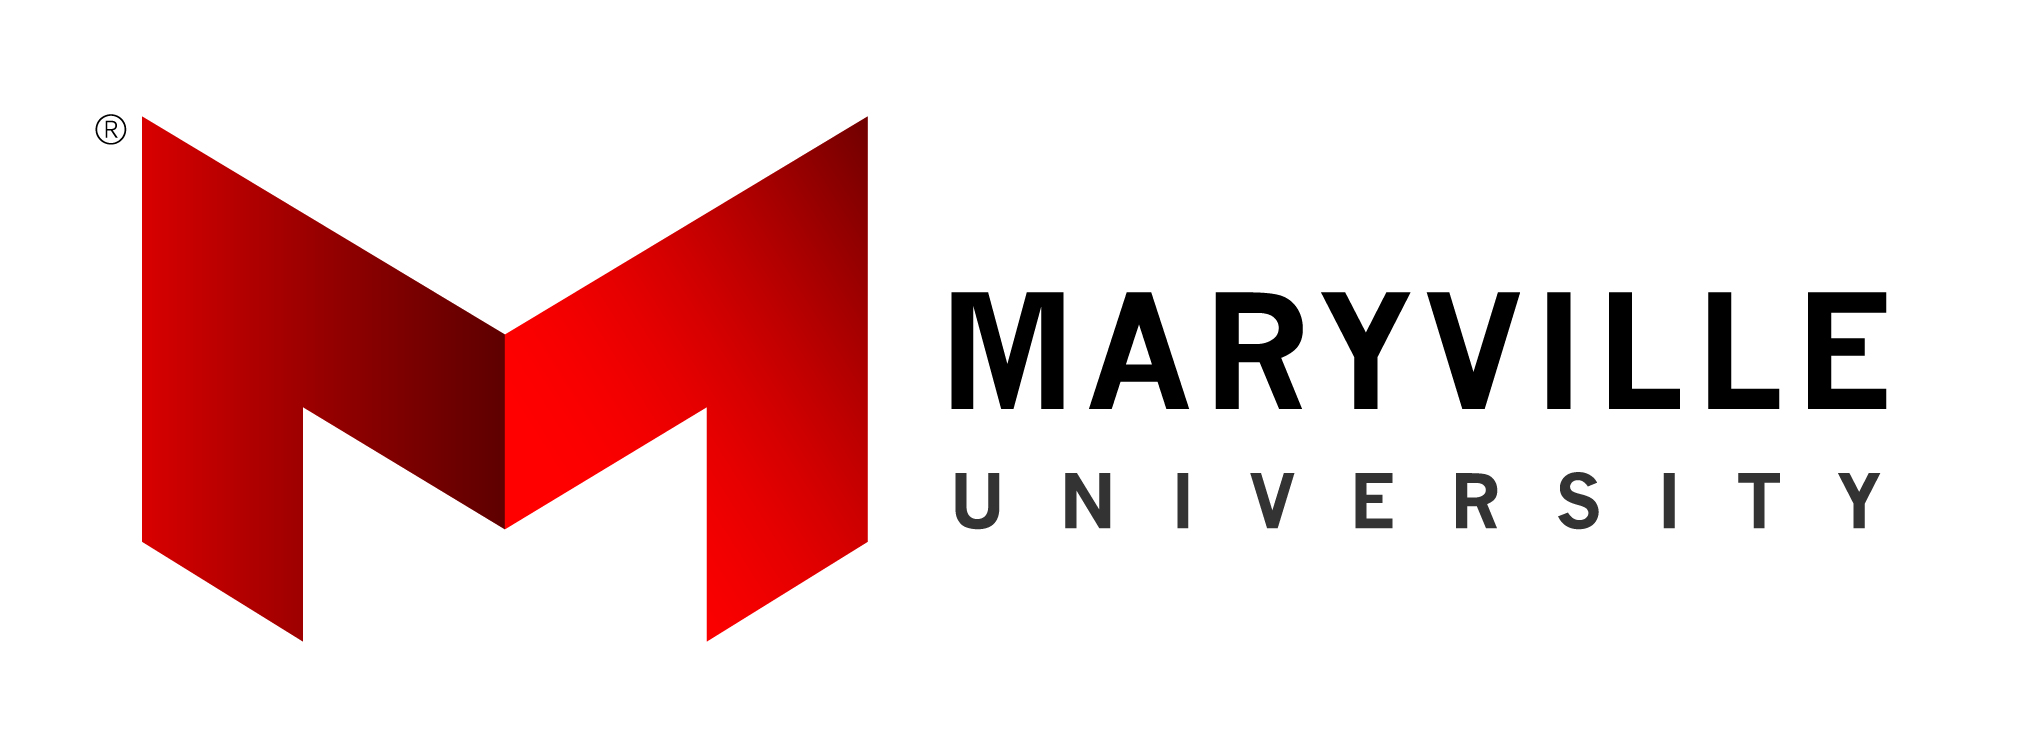 Maryville University: an Active-Learning Ecosystem